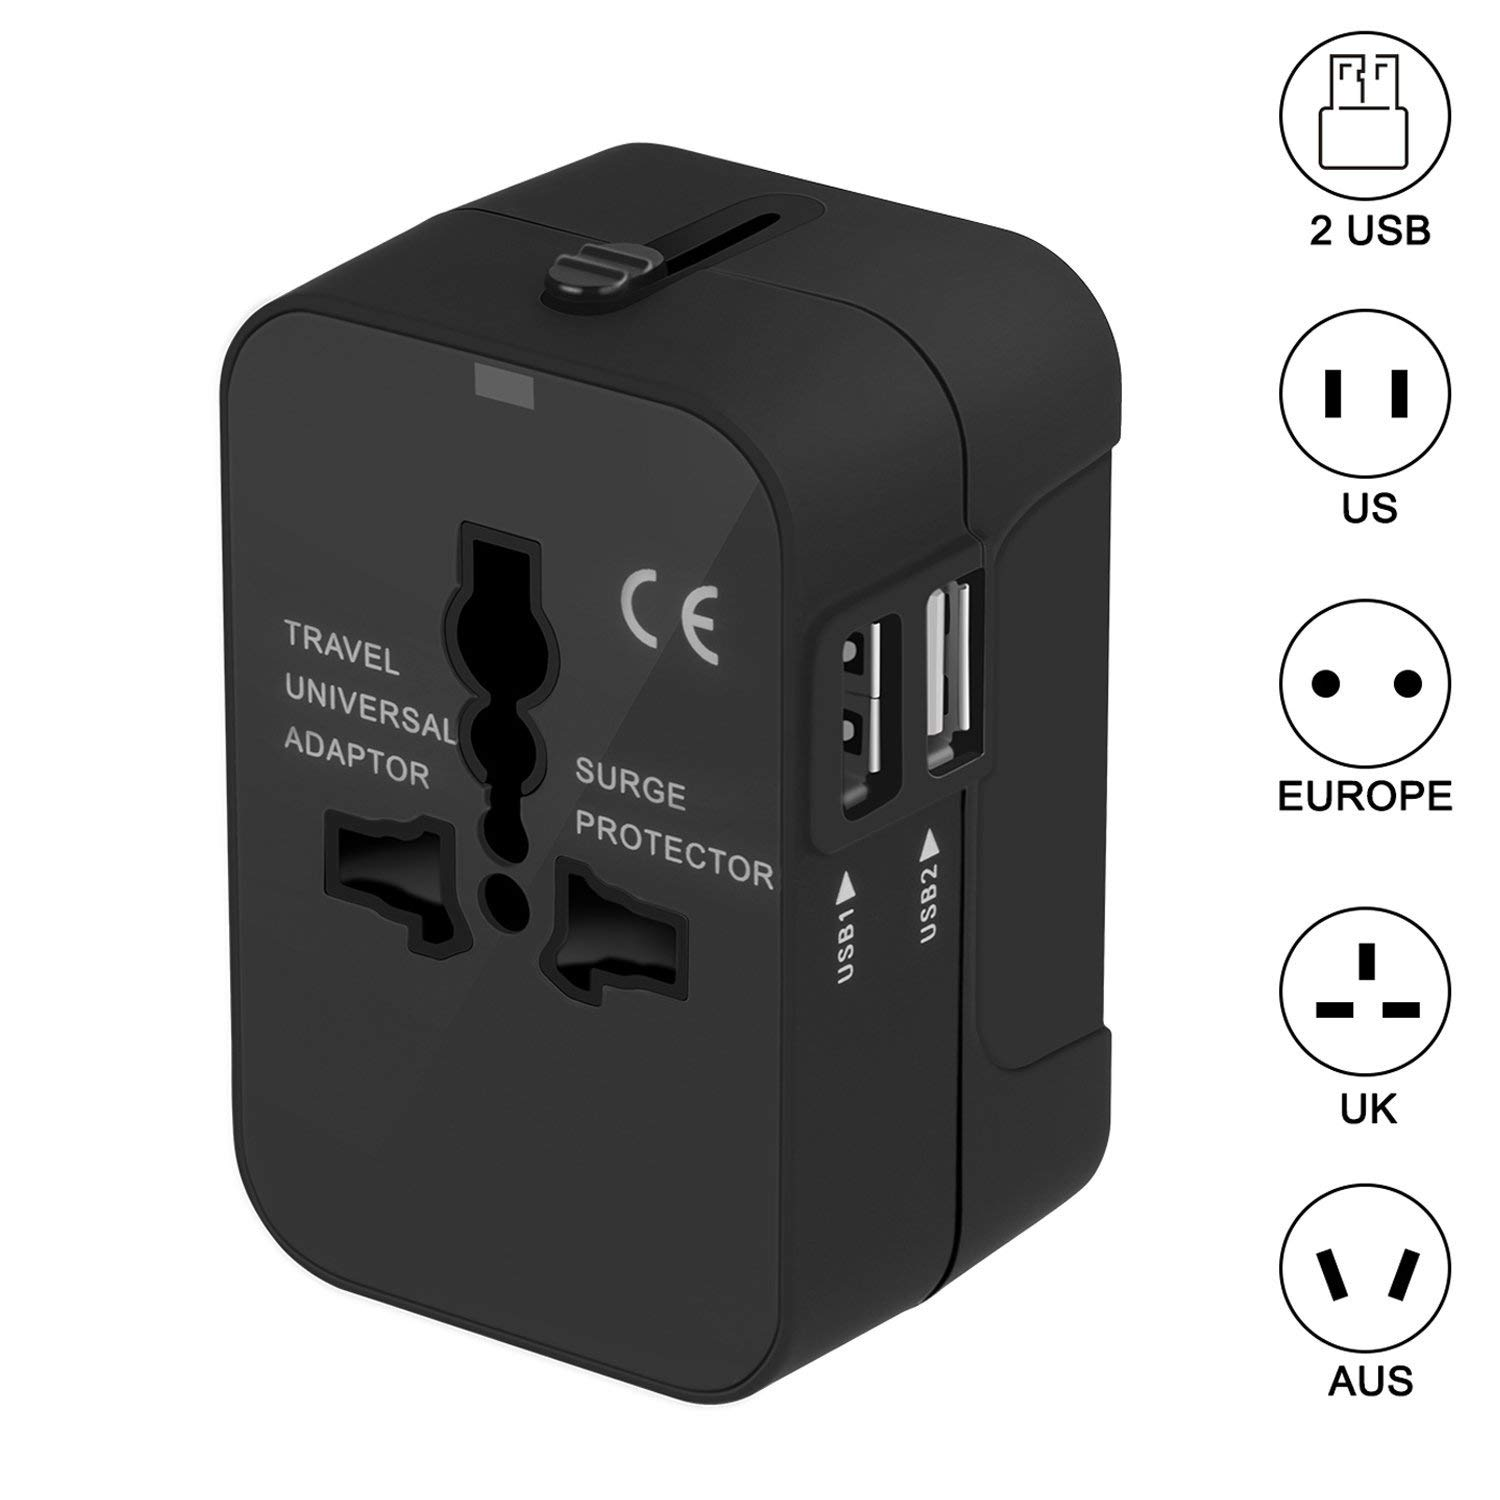 Travel Adapter - Worldwide All in One Universal Power Converters Wall AC Power Plug Adapter Power Plug Wall Charger with Dual USB Charging Ports for USA EU UK AUS Cell Phone Laptop (Black)